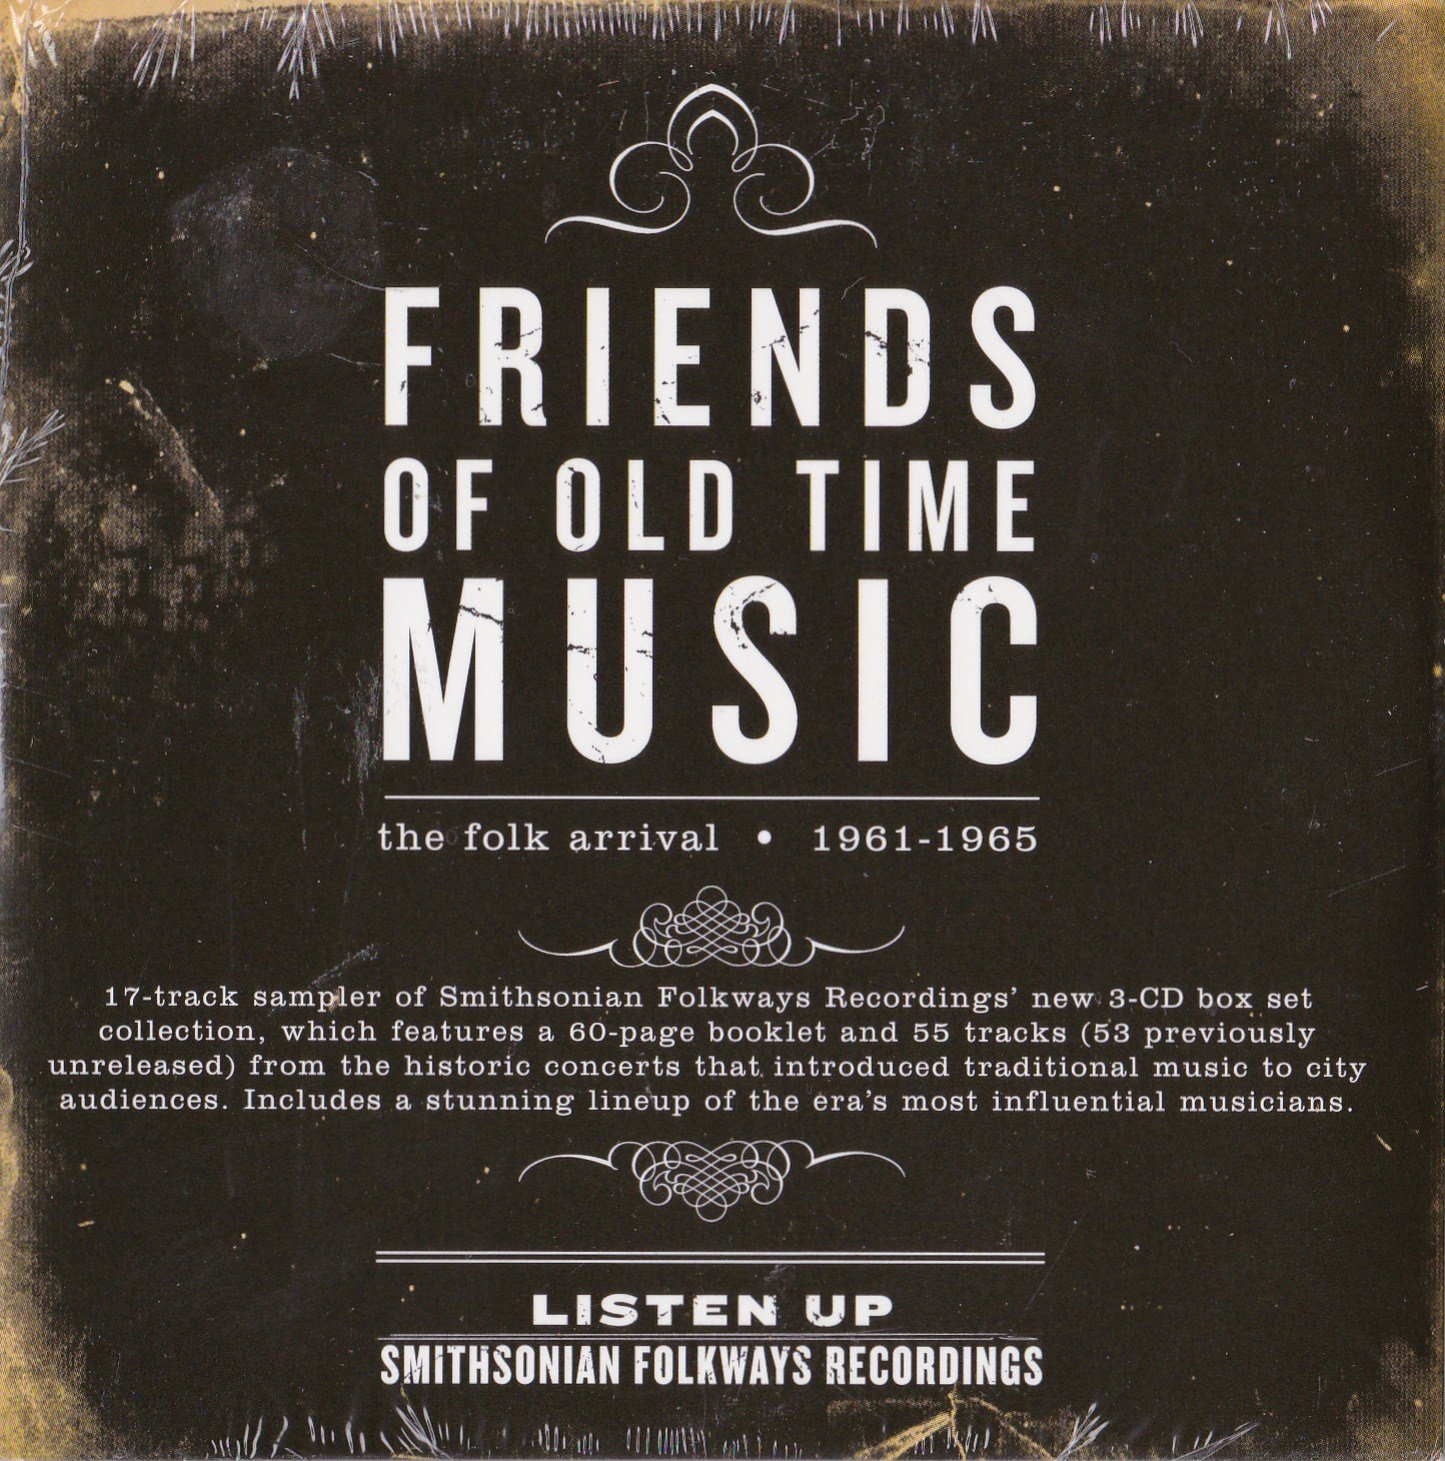 Friends of Old Time Music - Amazon com Music